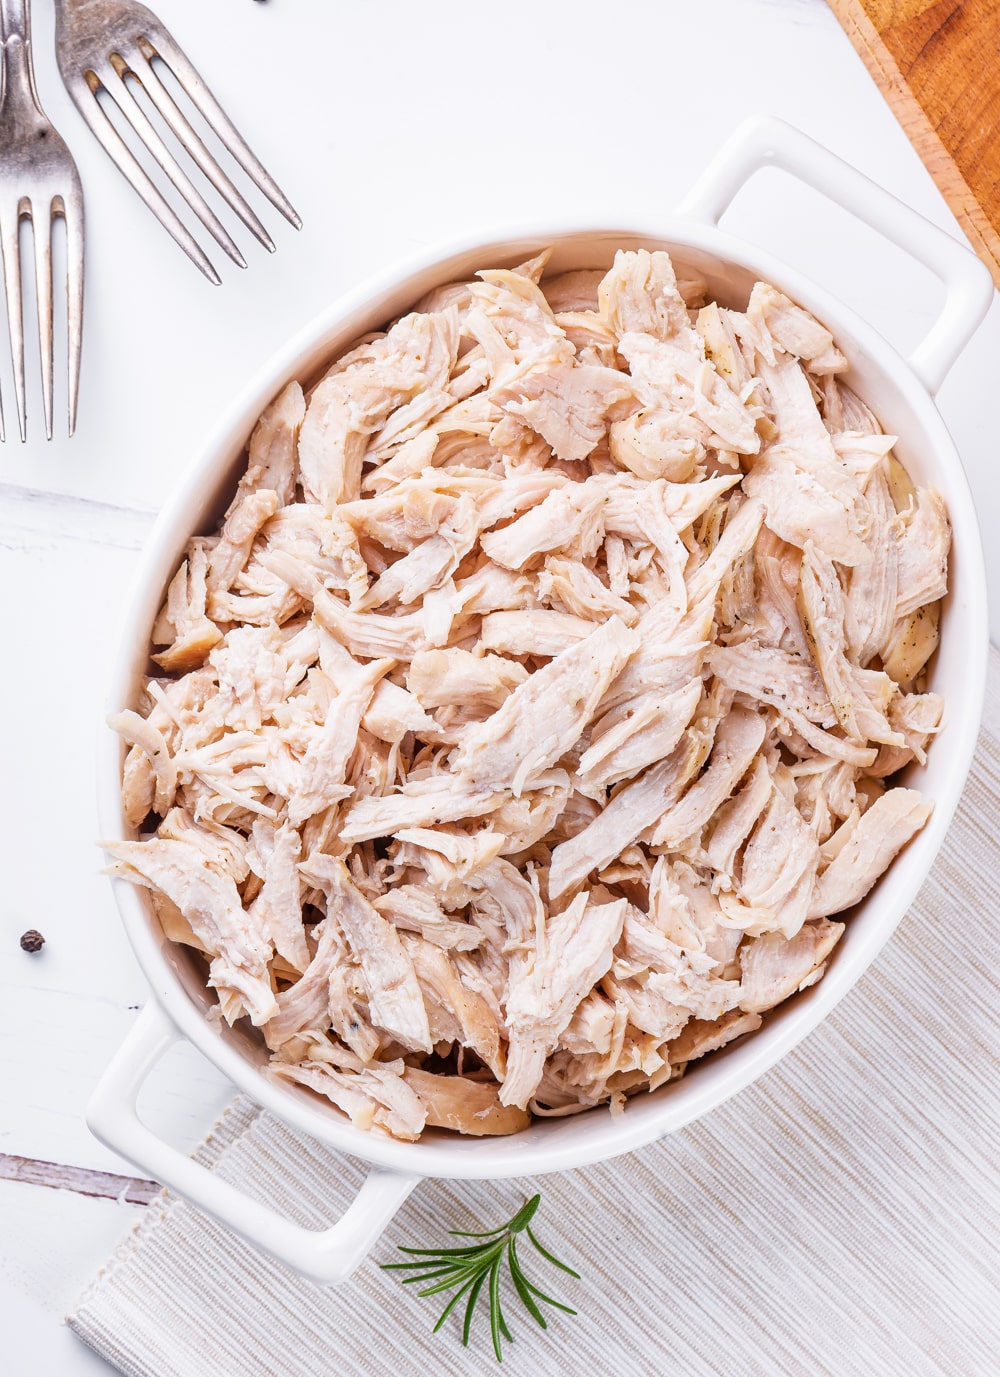 All white meat chicken shredded in a white casserole dish.